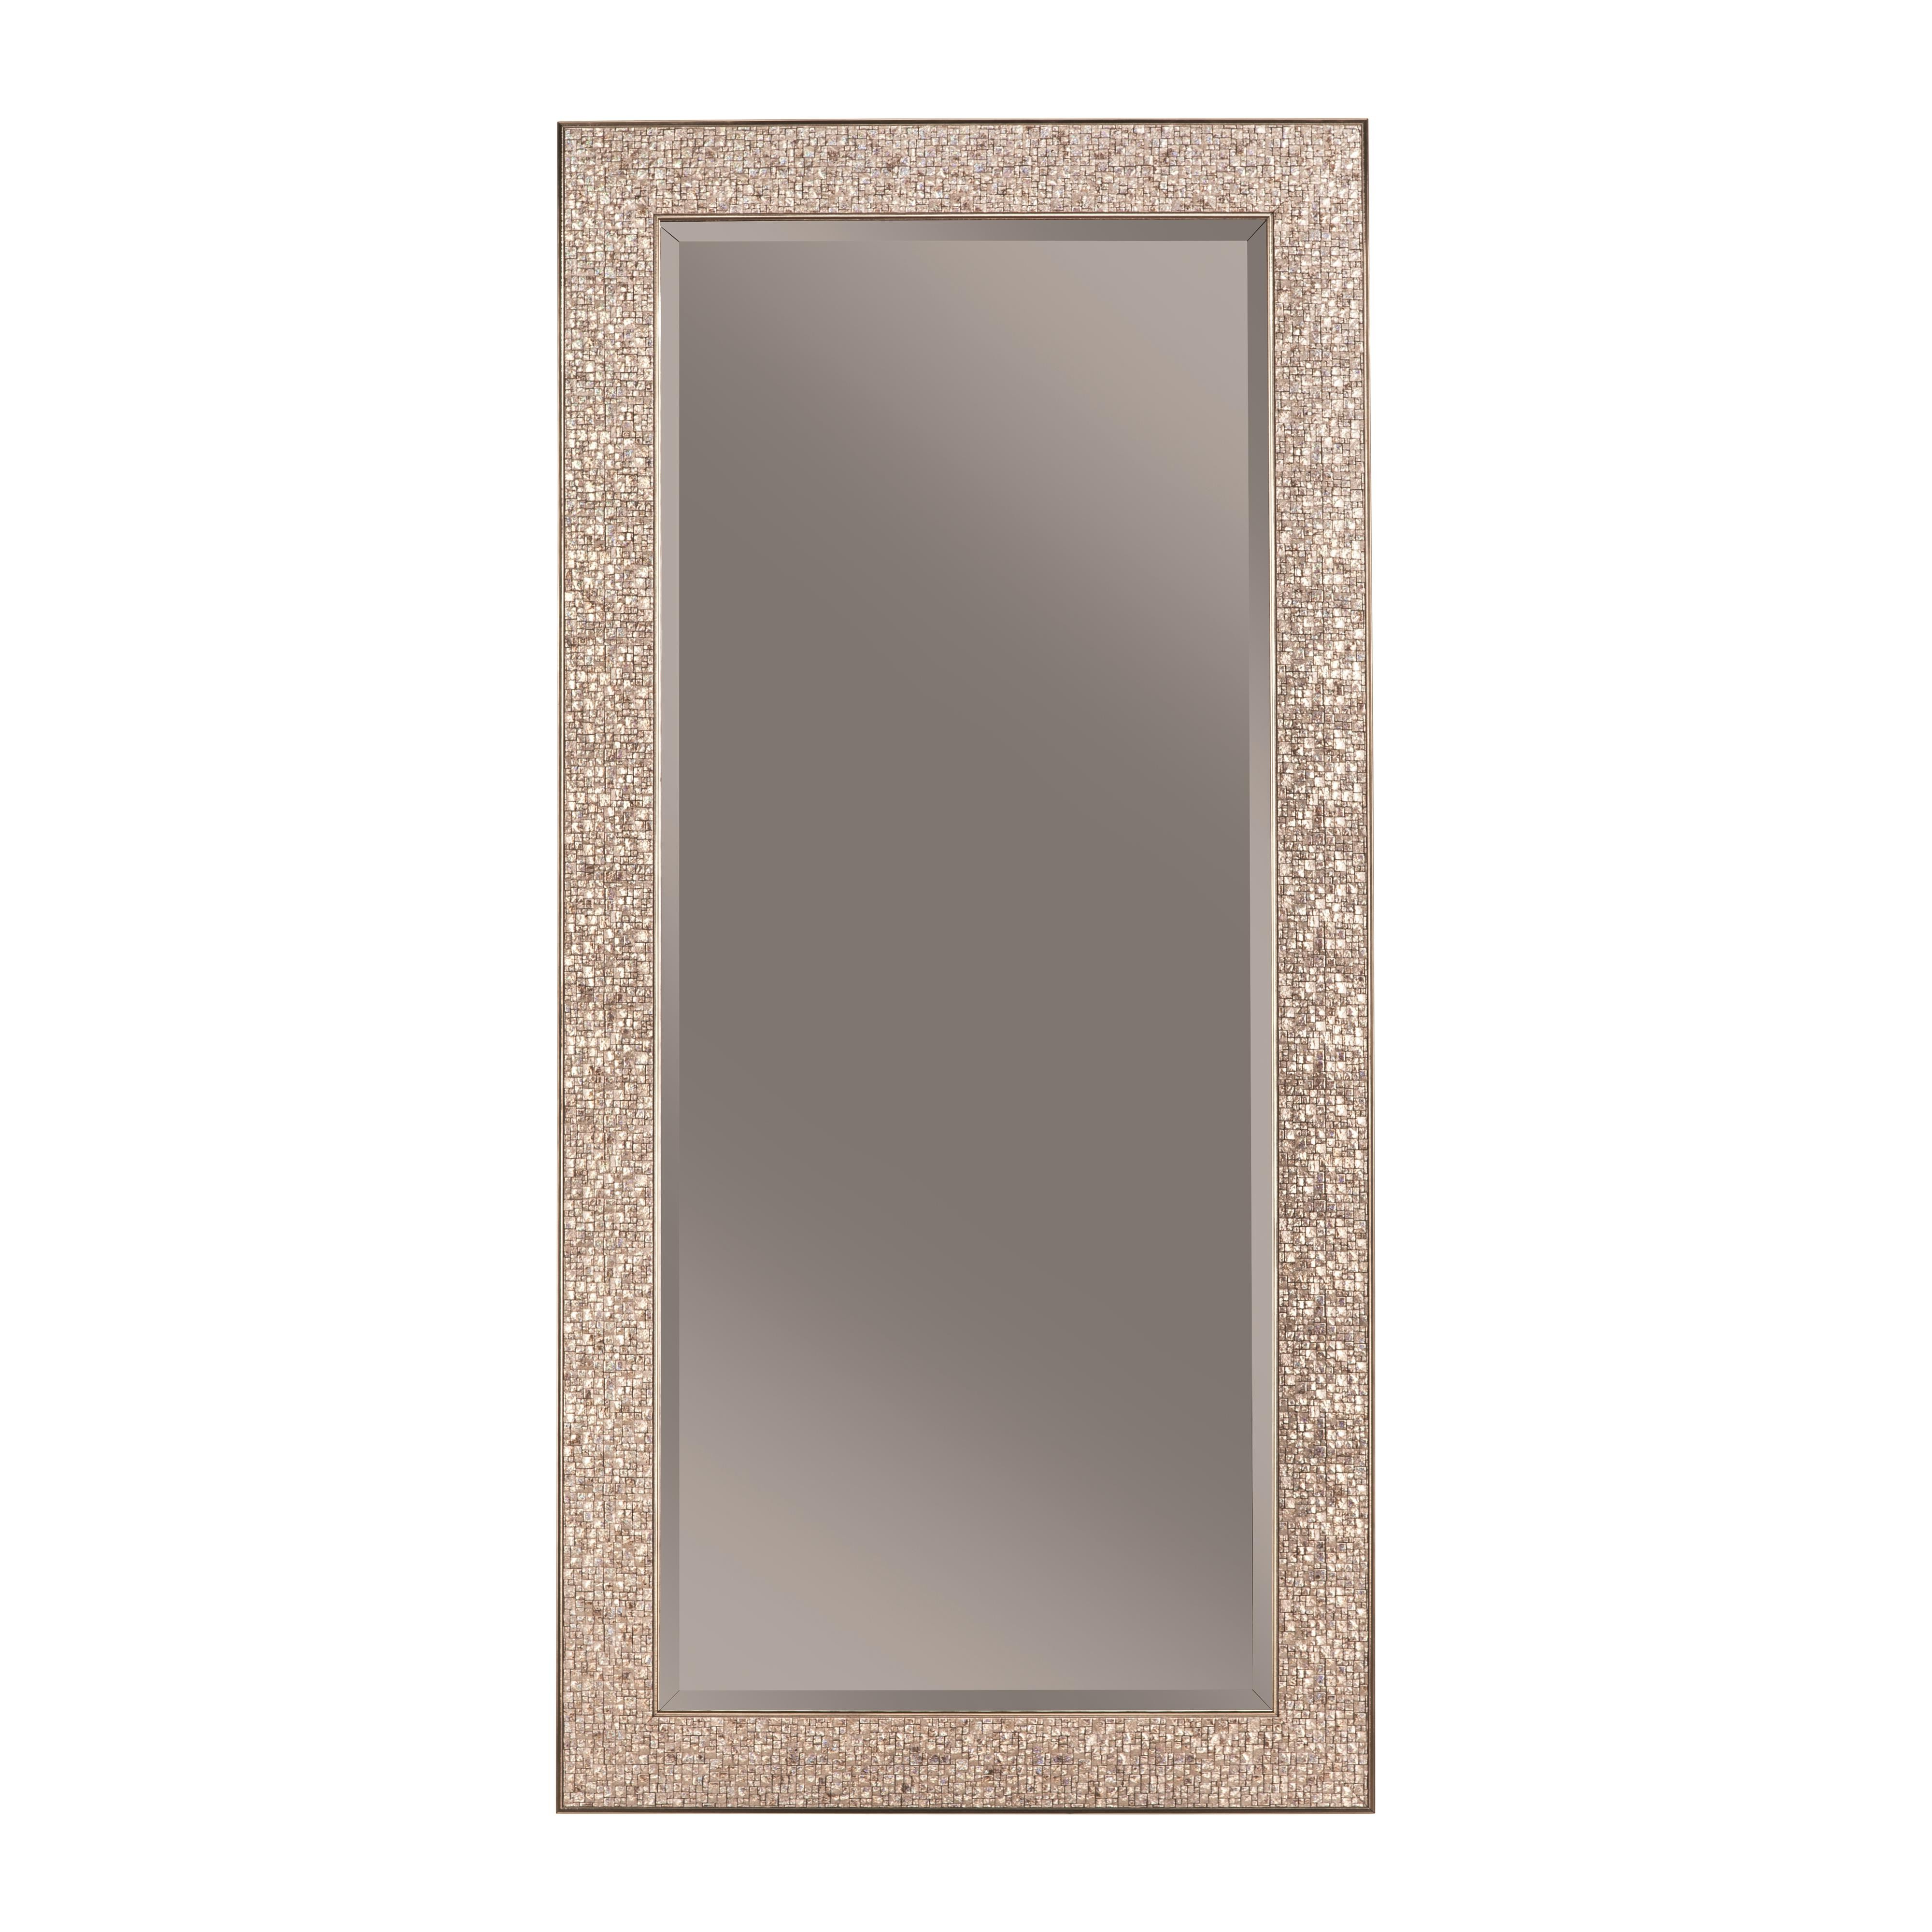 Silver Frame Accent Mirrors Pertaining To Newest Coaster 901997 Accent Mirrors Accent Mirror With Colored Mosaic (View 7 of 20)